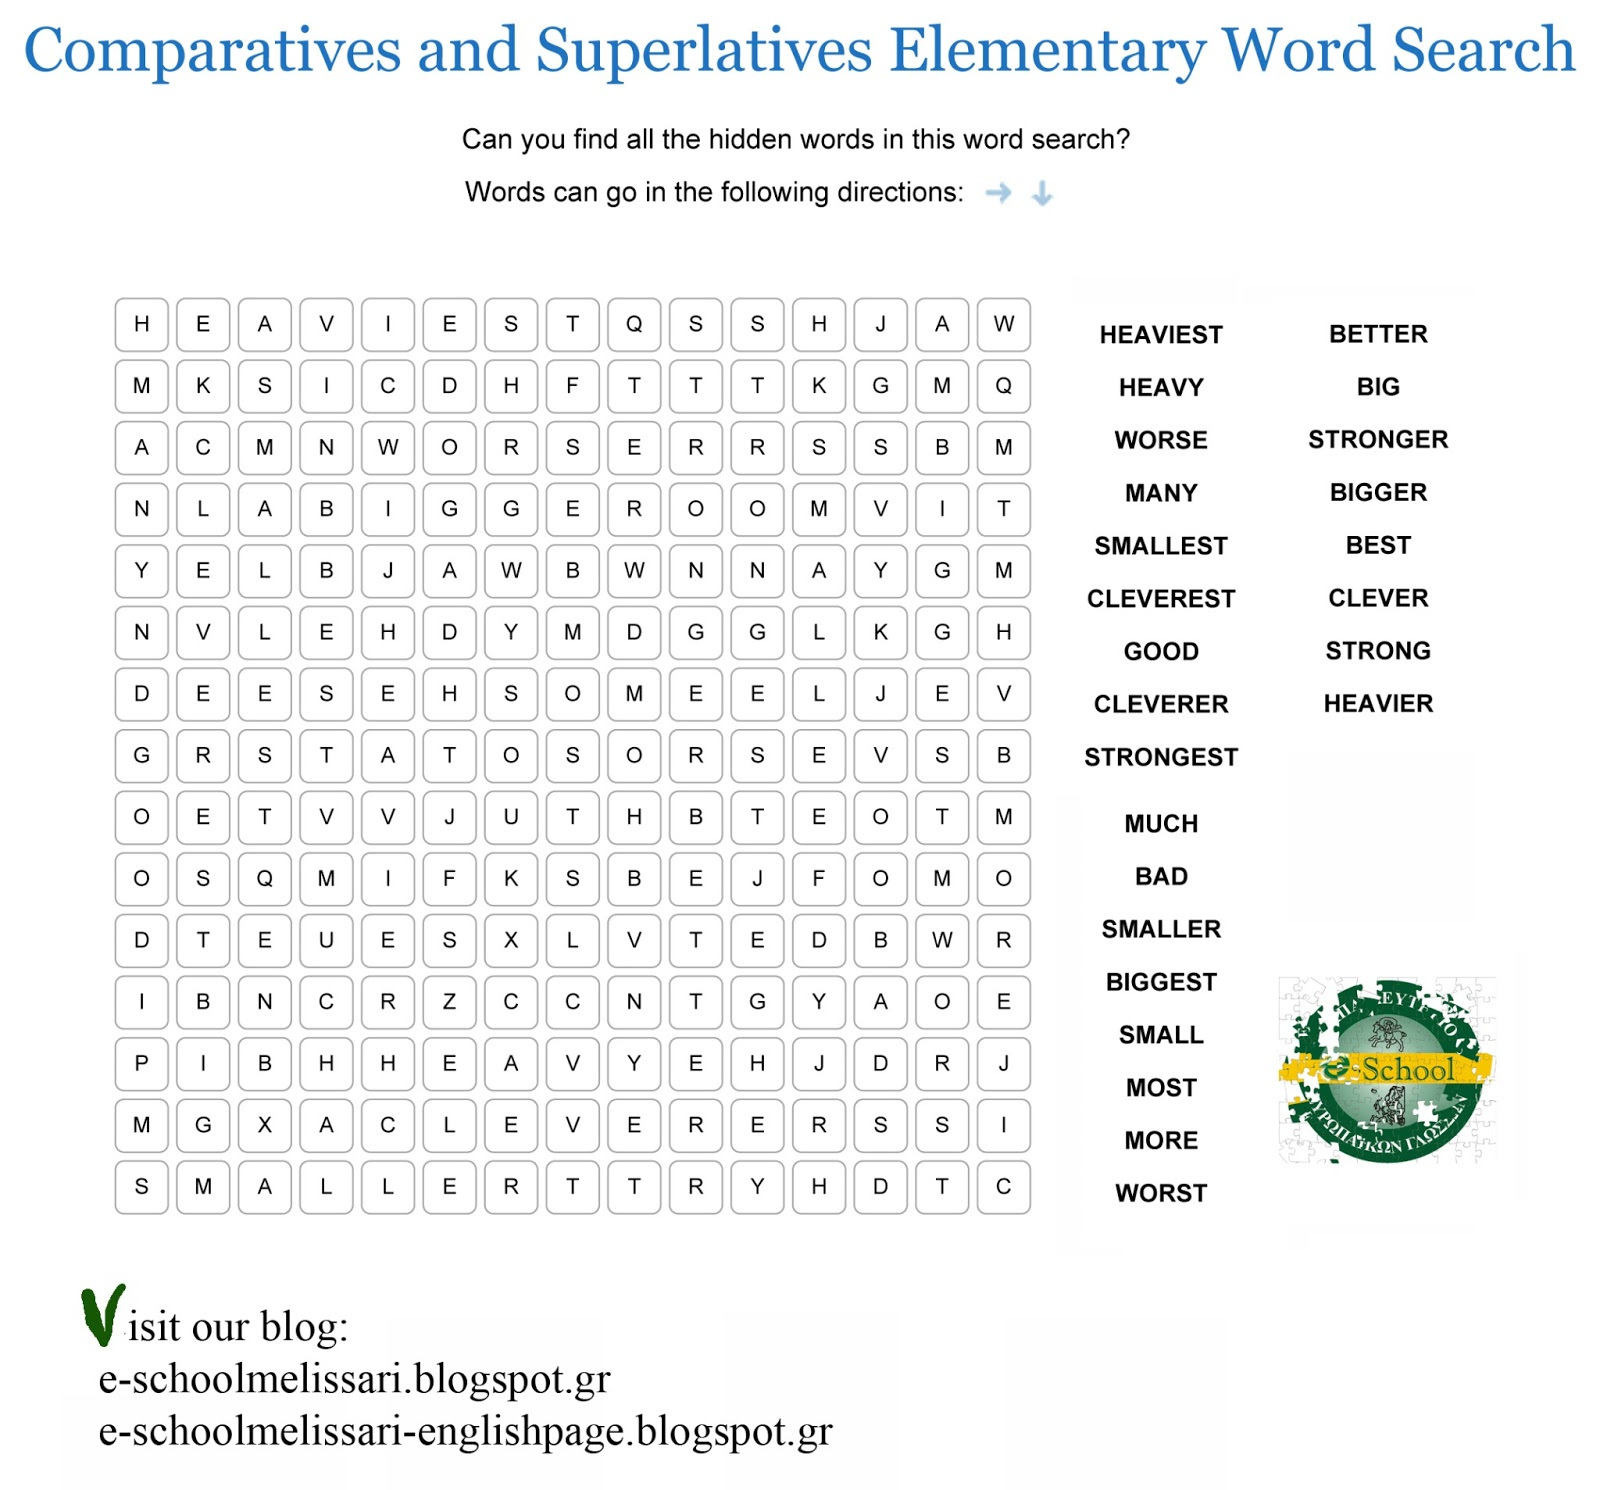 worksheet Comparative Superlative Worksheet comparatives and superlatives worksheets for kids abitlikethis elementary word search